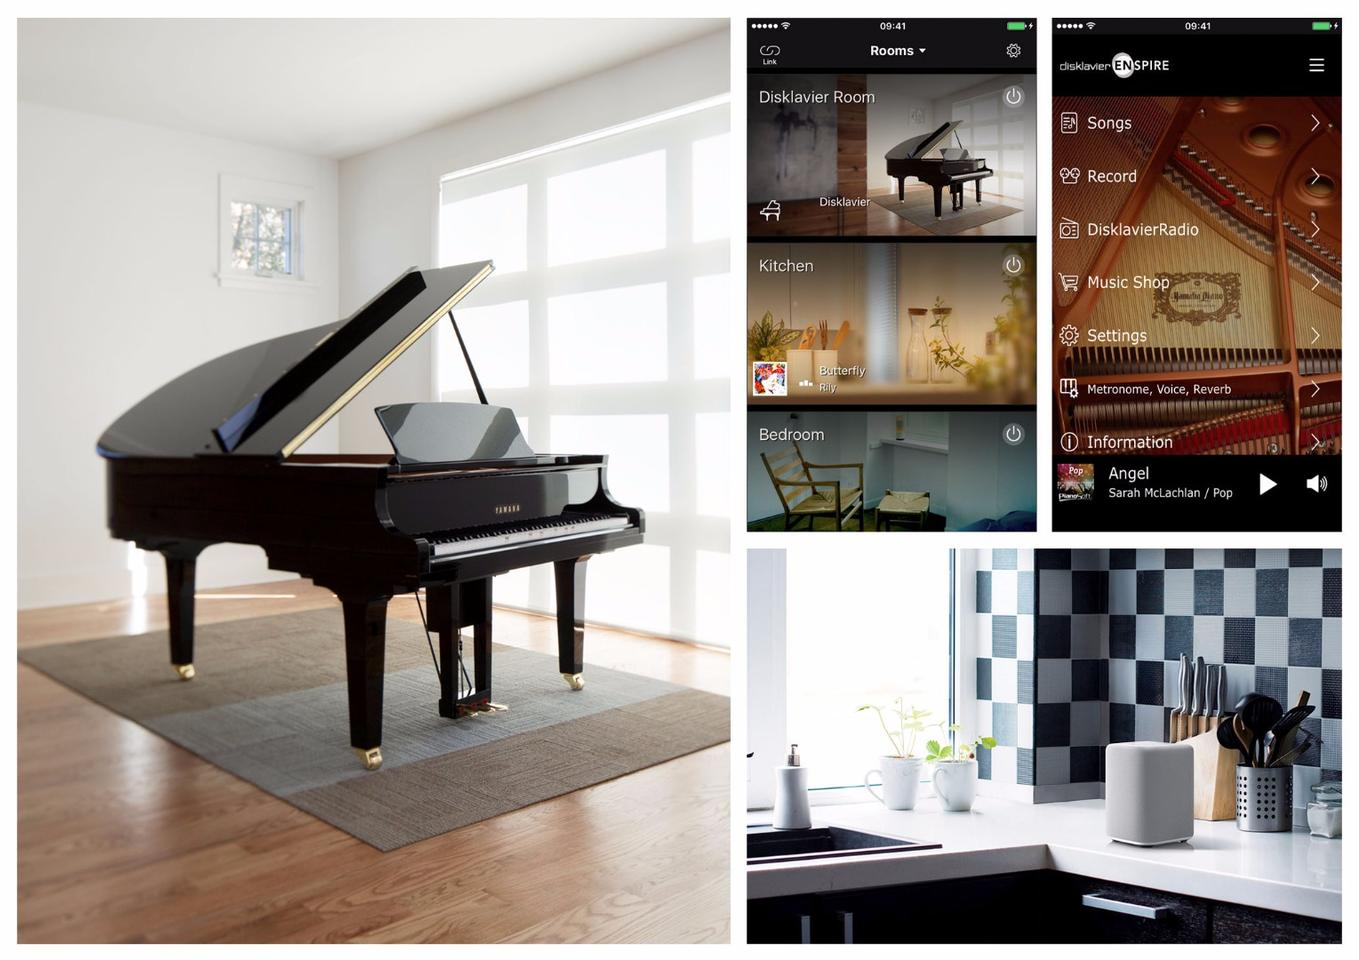 Yamaha has made its new Disklavier Enspire reproducing piano MusicCast-enabled